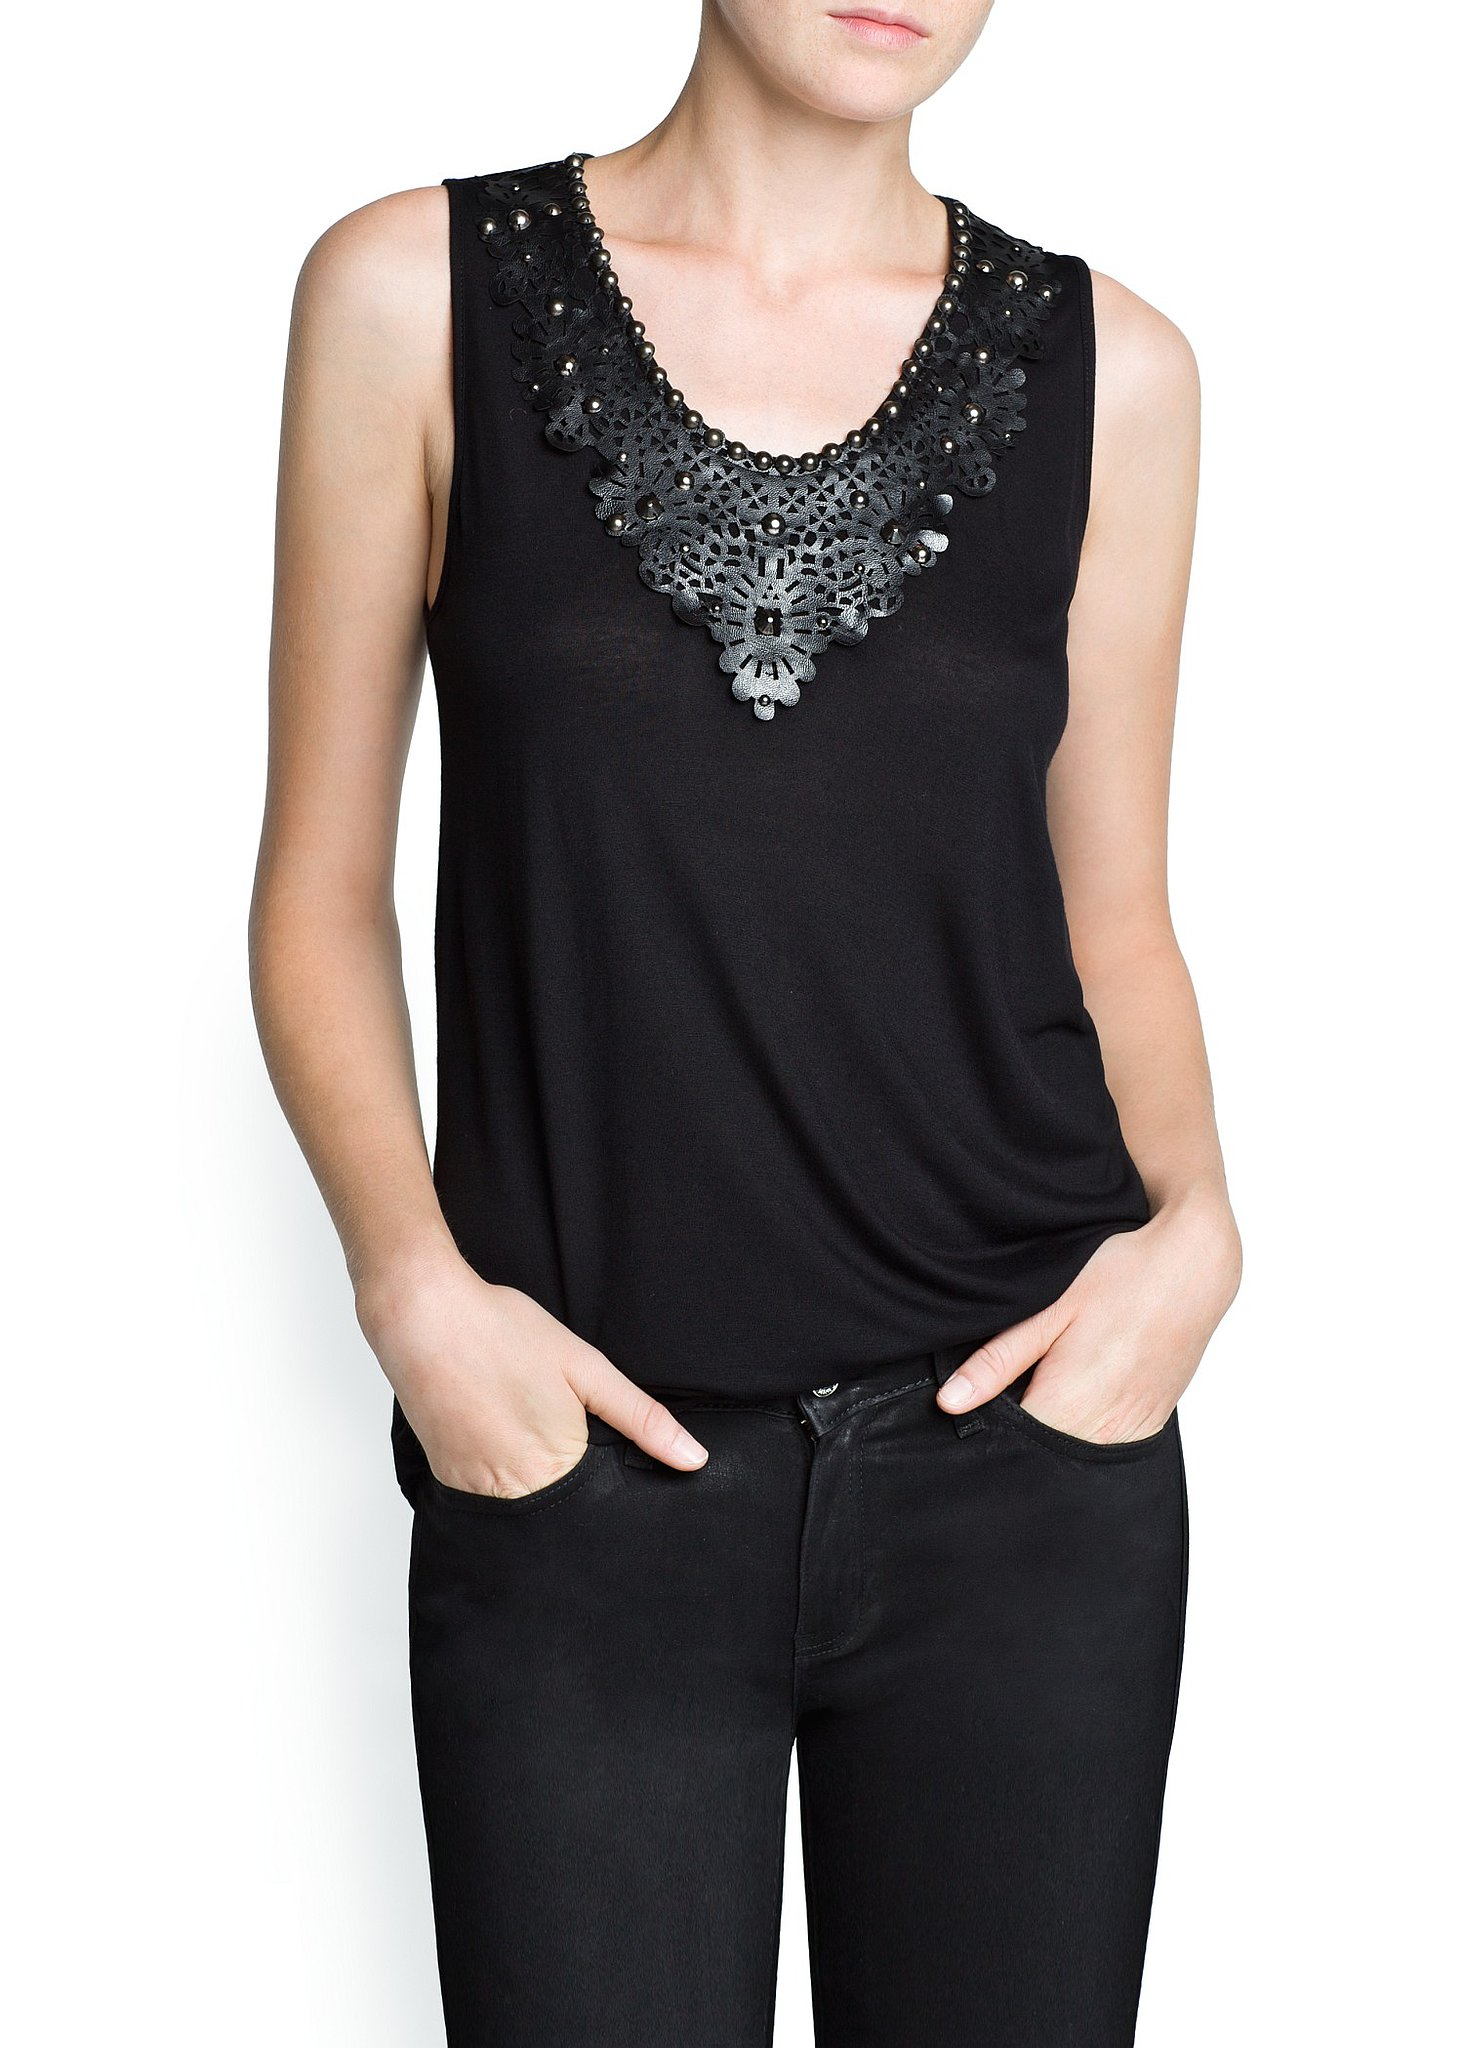 A touch of leather can add a luxe feel to basics. This Mango tank ($35) is far from simple thanks